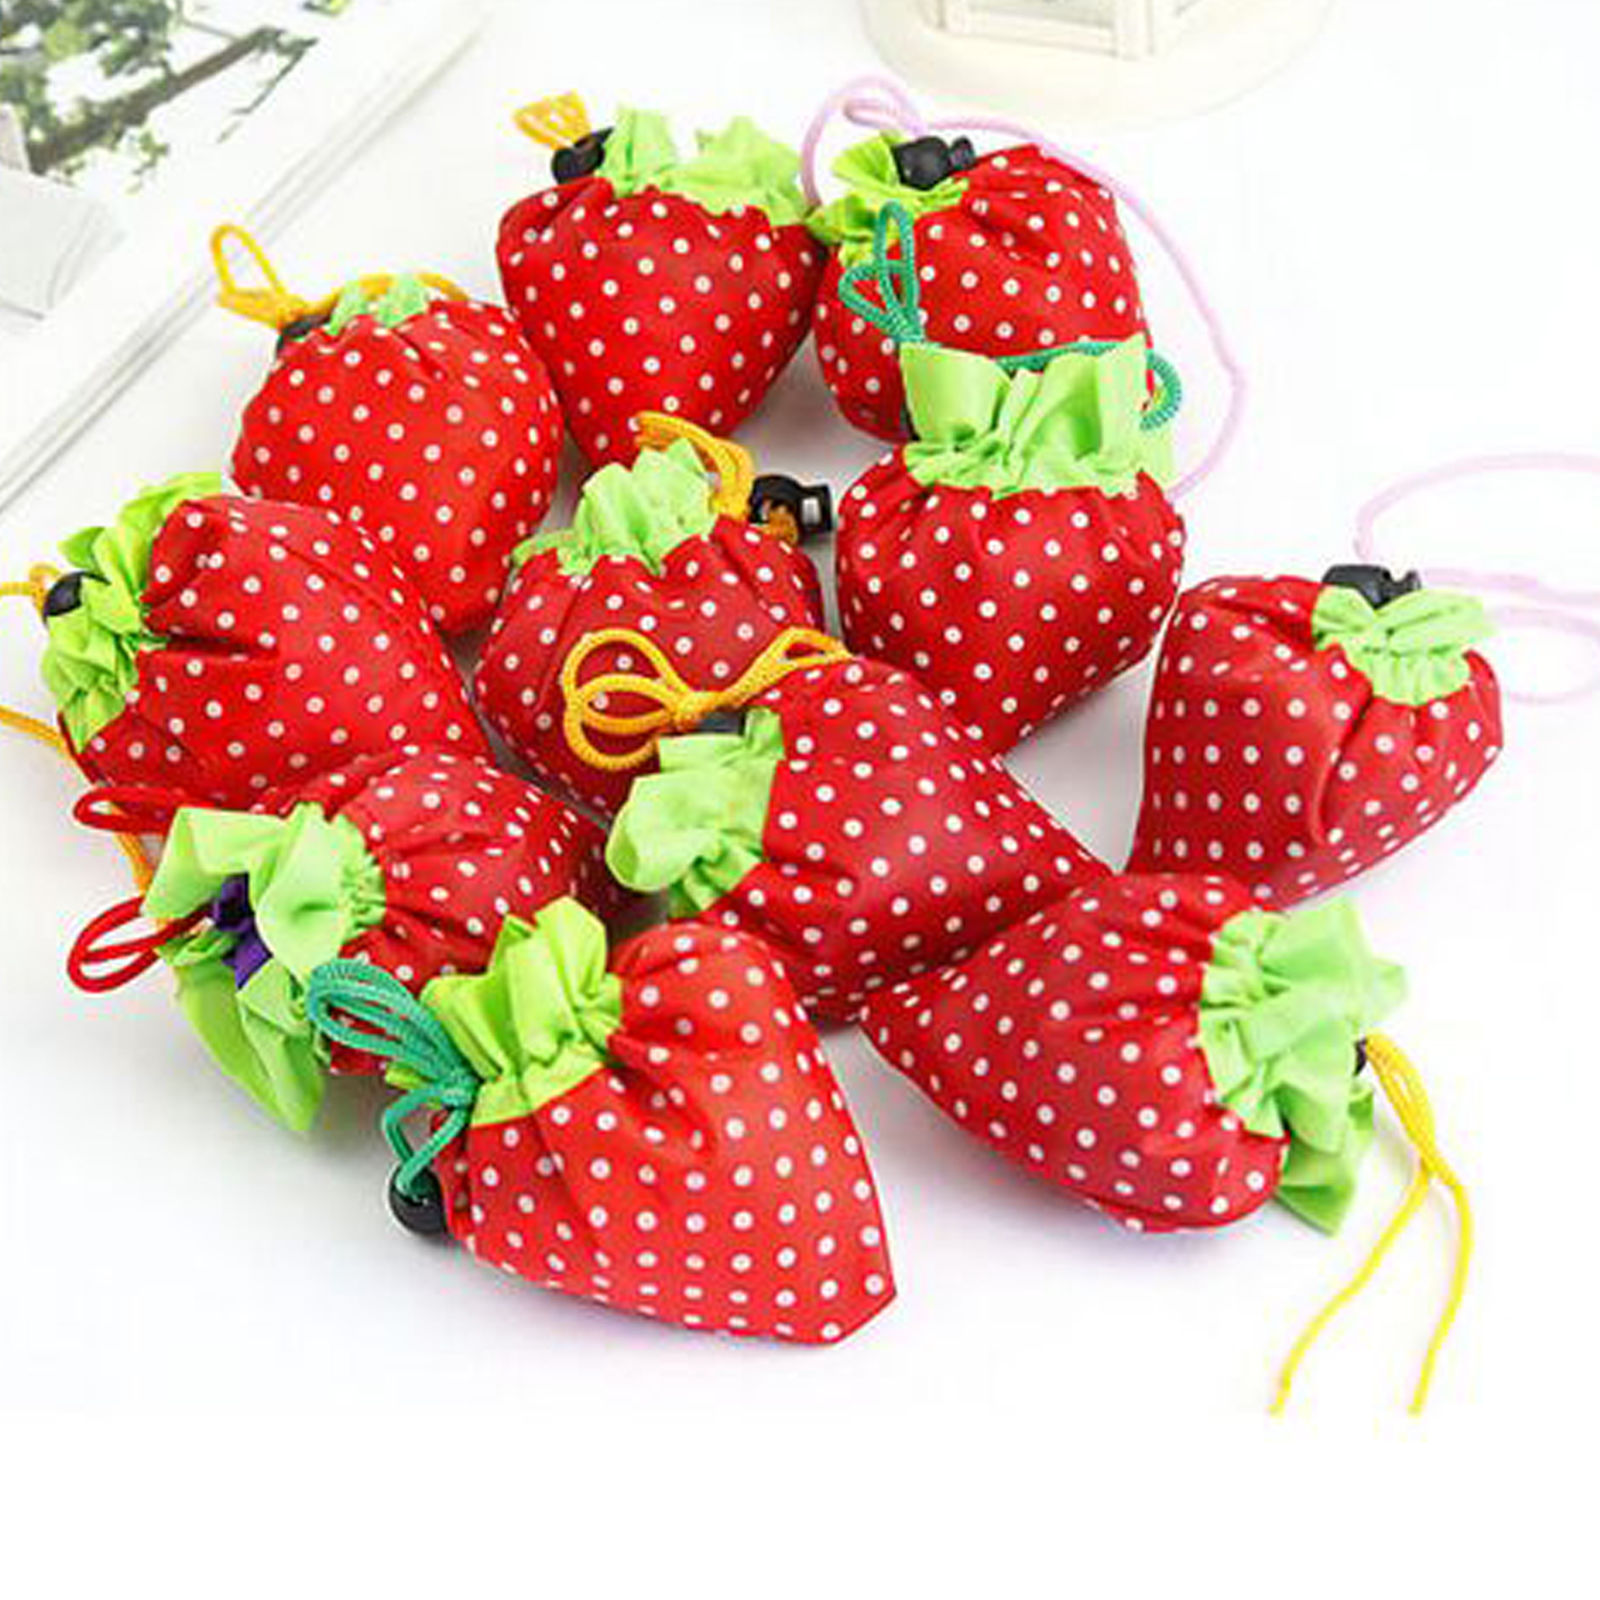 Cute Foldable Storage Strawberry Eco Reusable Shopping Recycle Grogery Bag